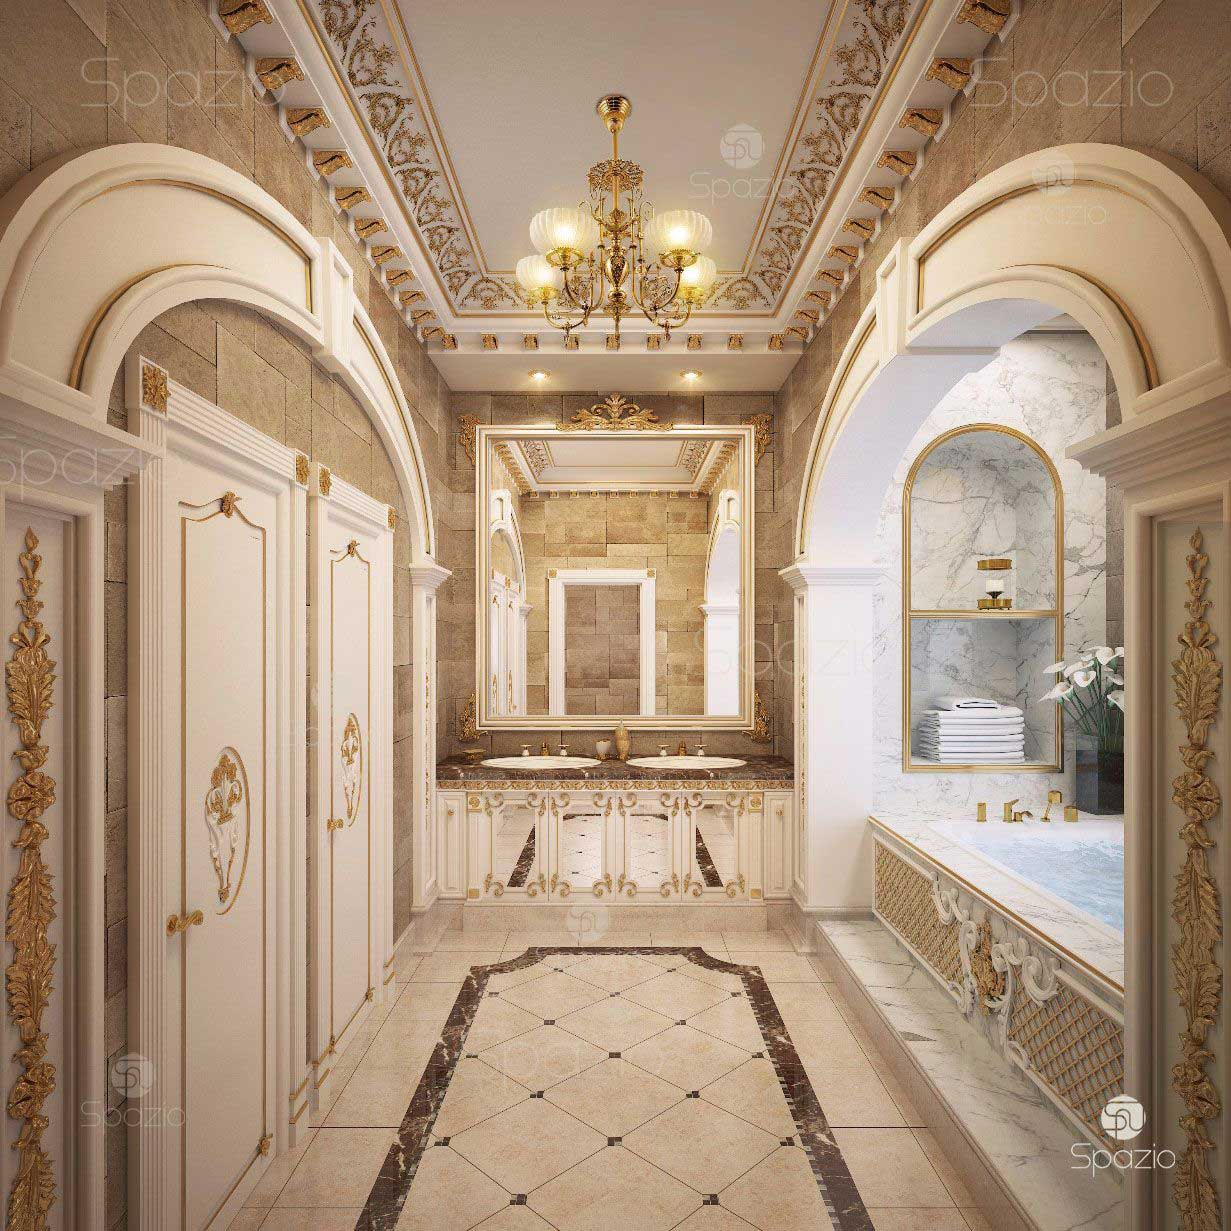 Luxury palace interior design in the uae spazio for Bathroom design uae